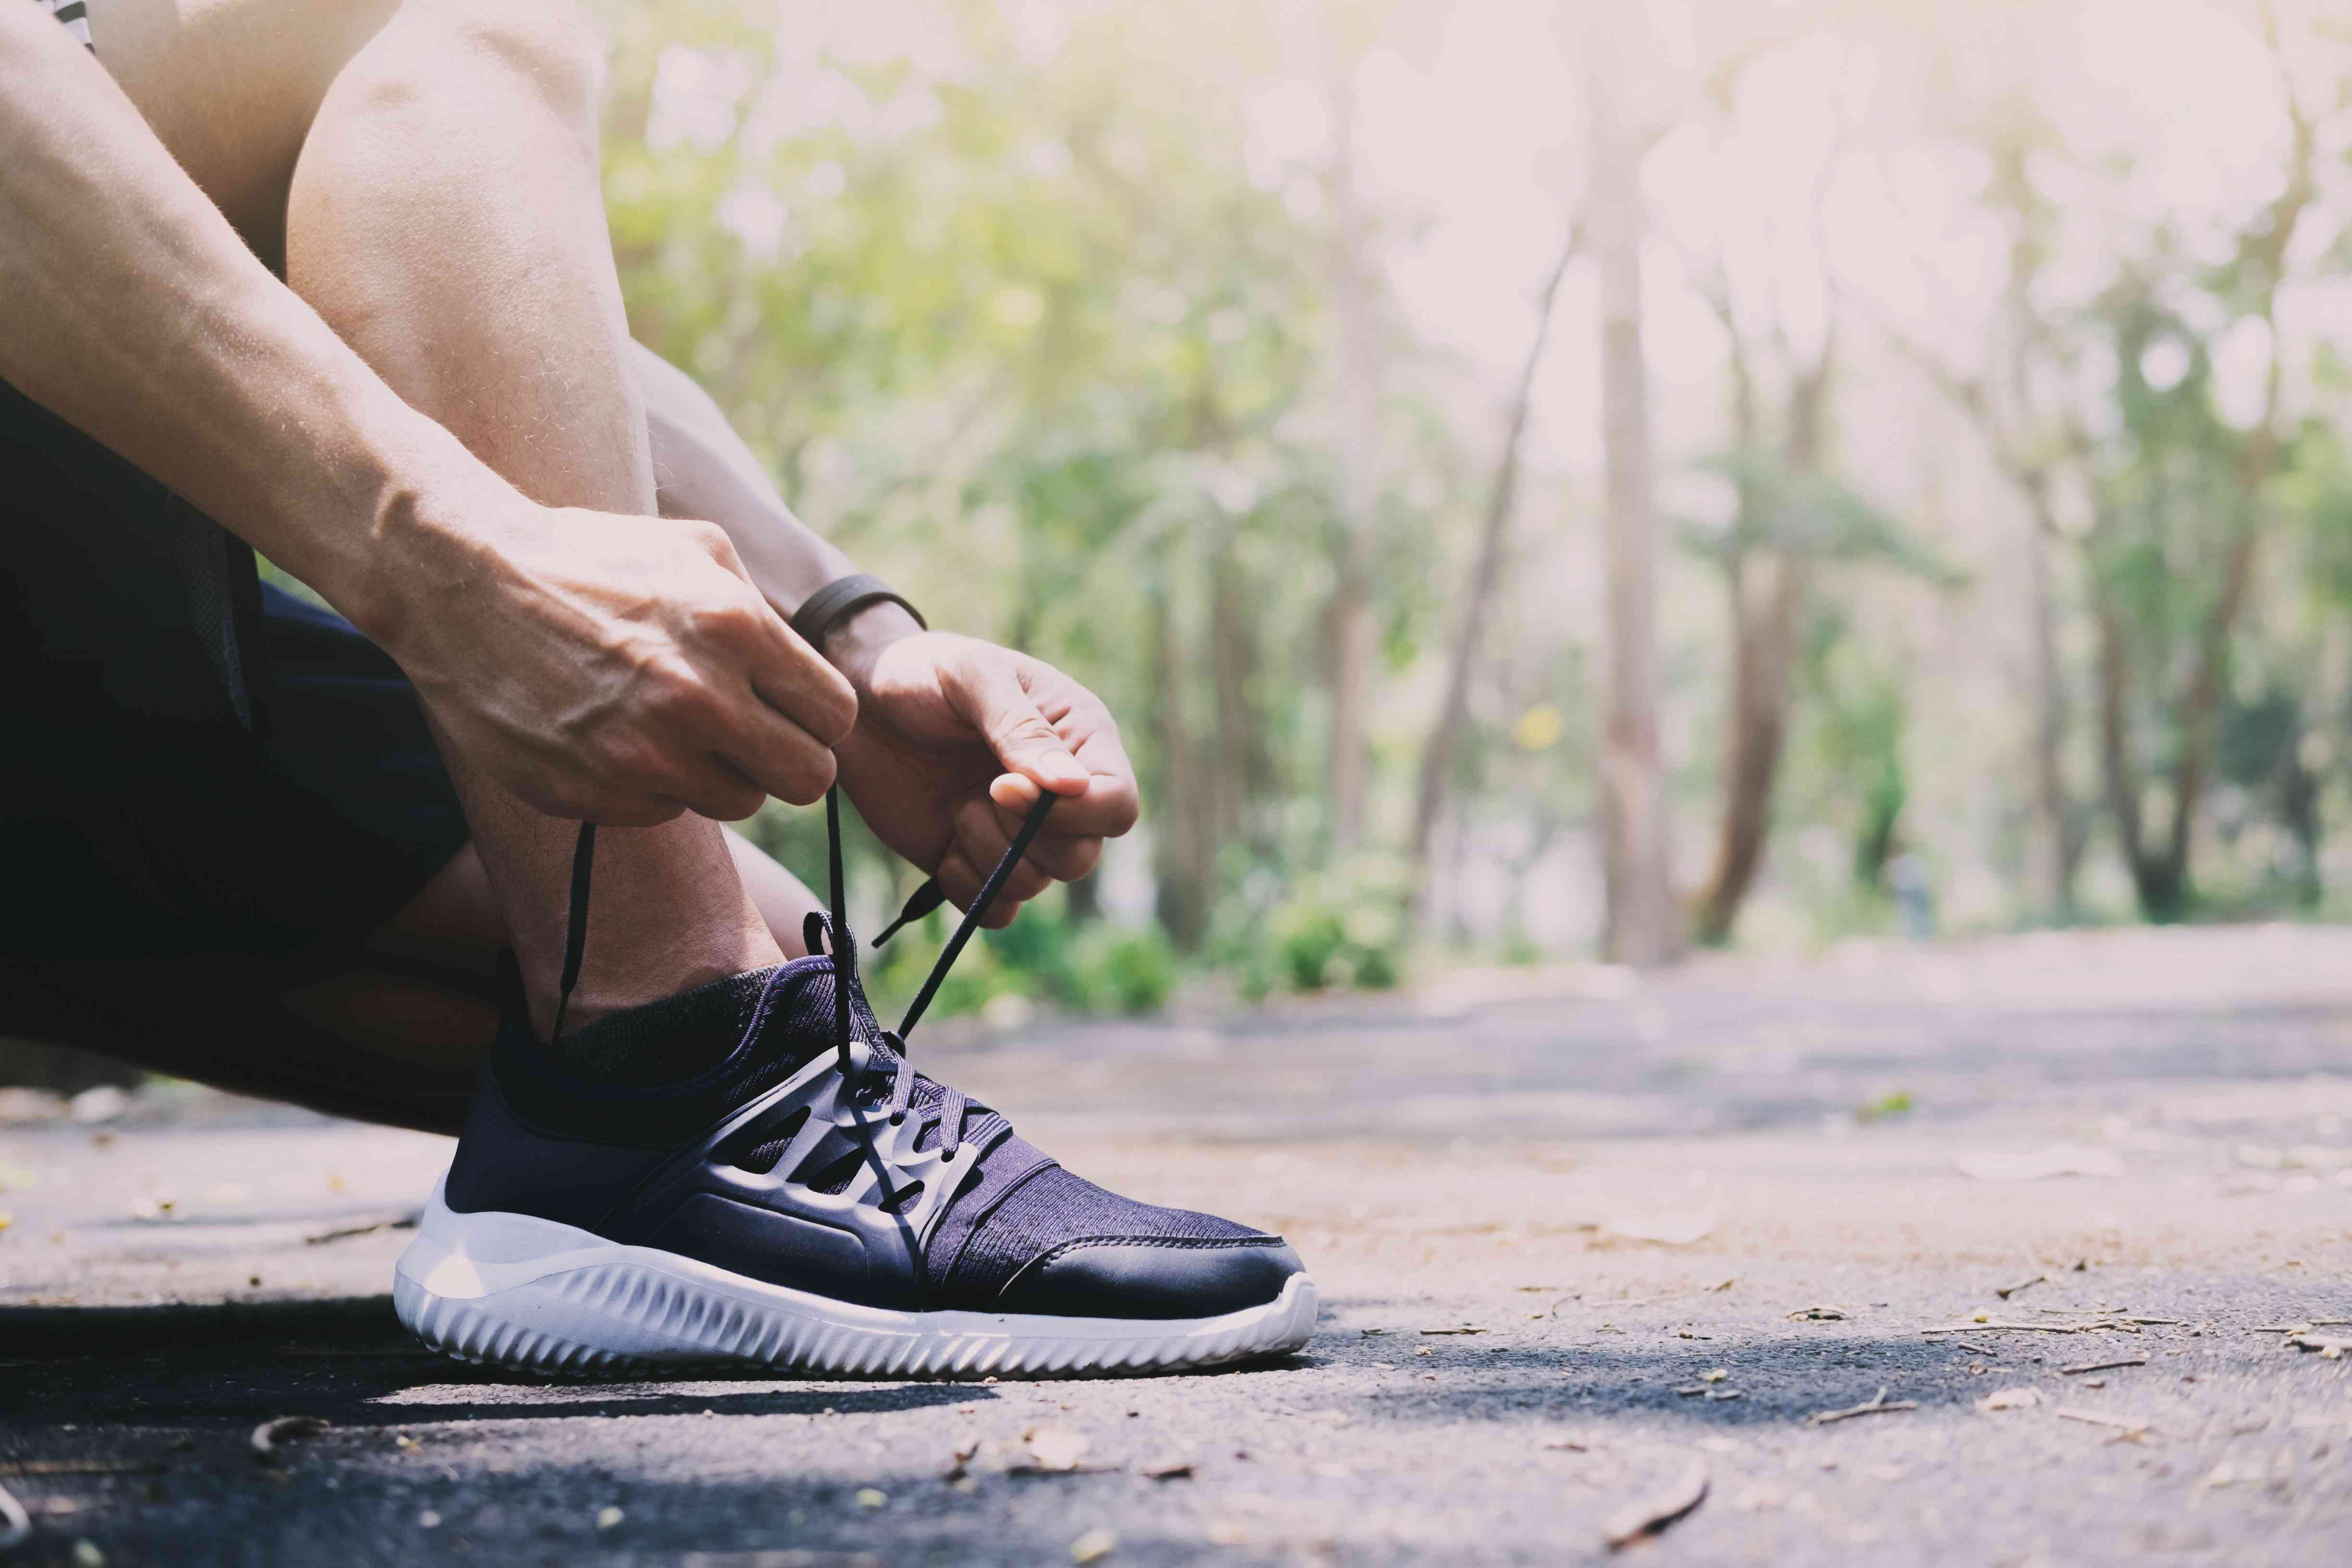 Person lacing up a sneaker in an outdoor environment